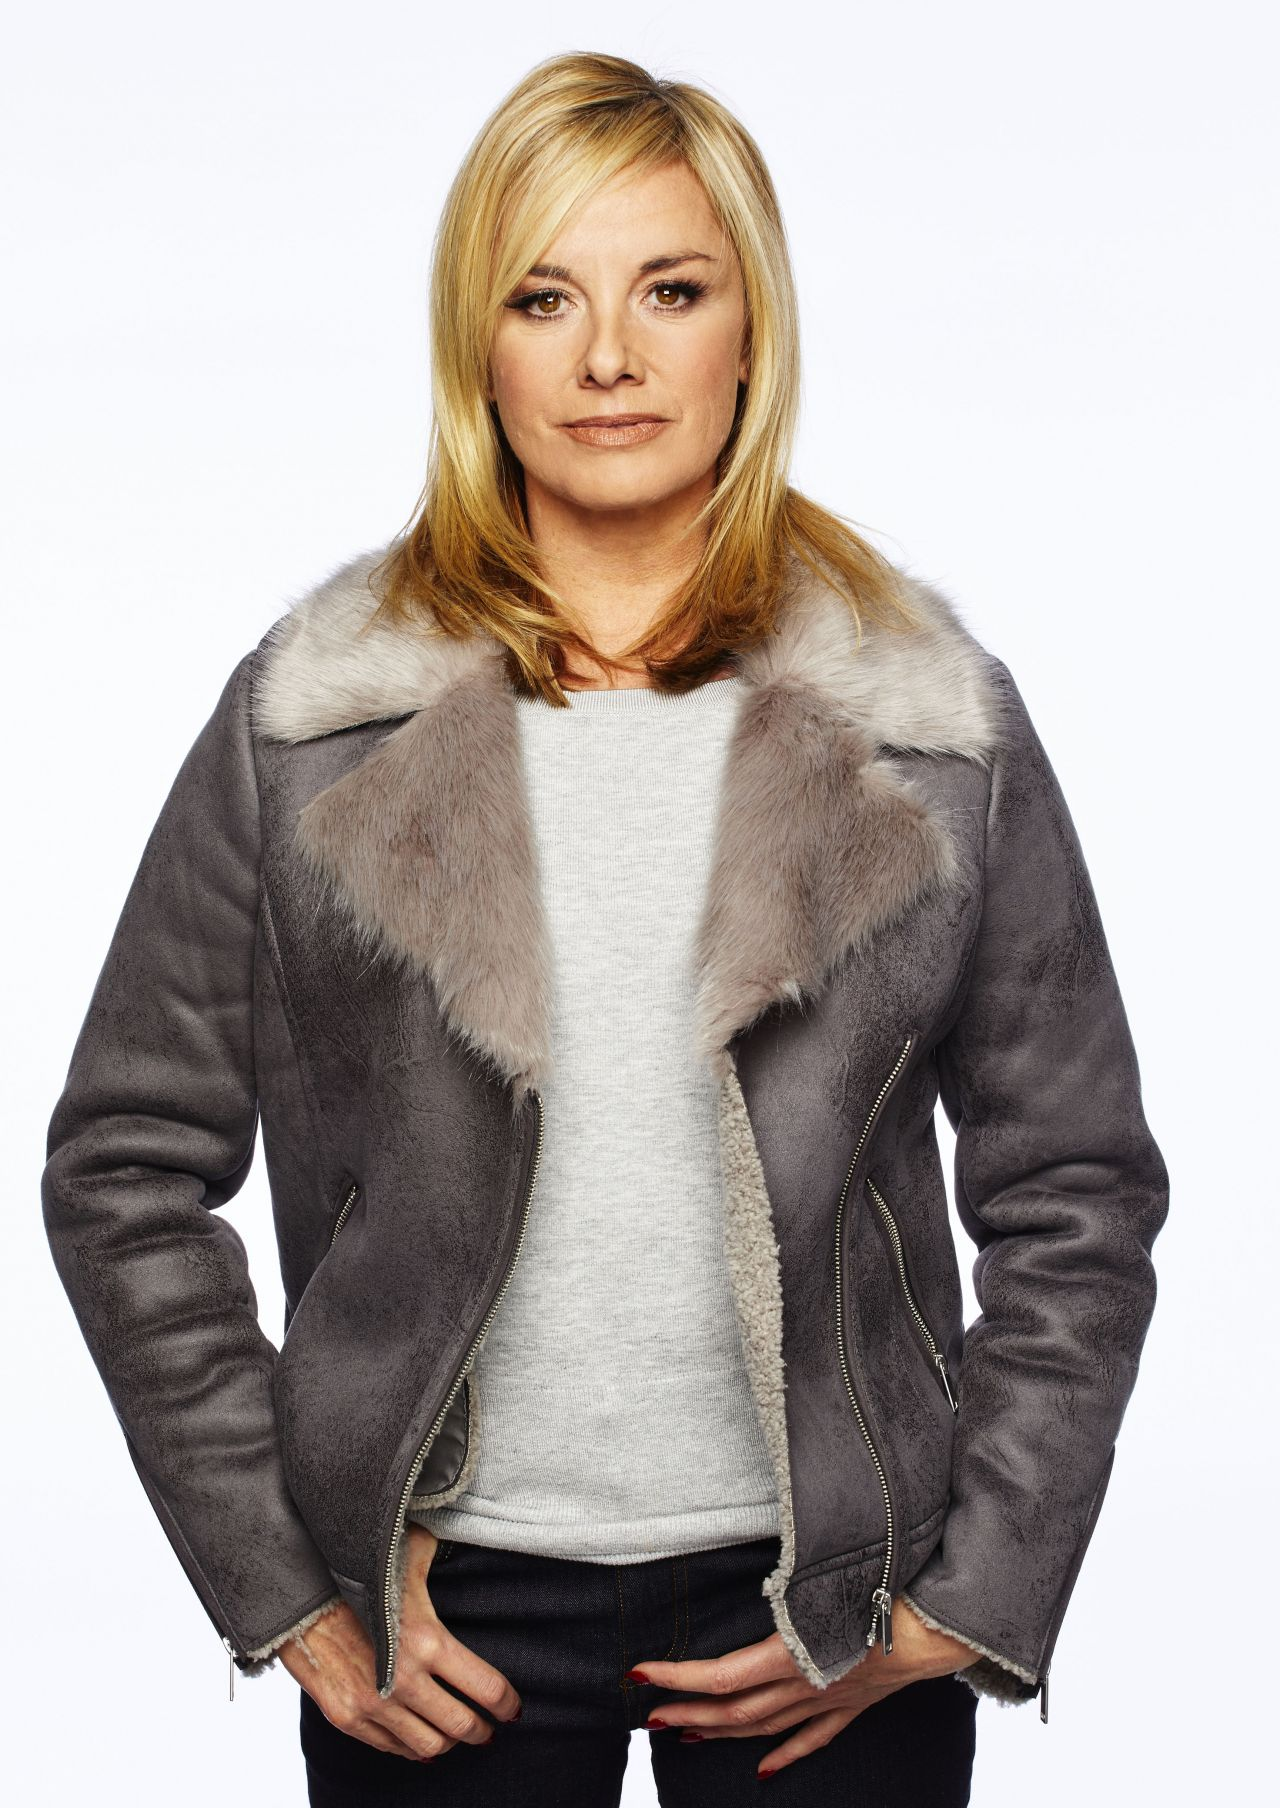 tamzin outhwaite - photo #37